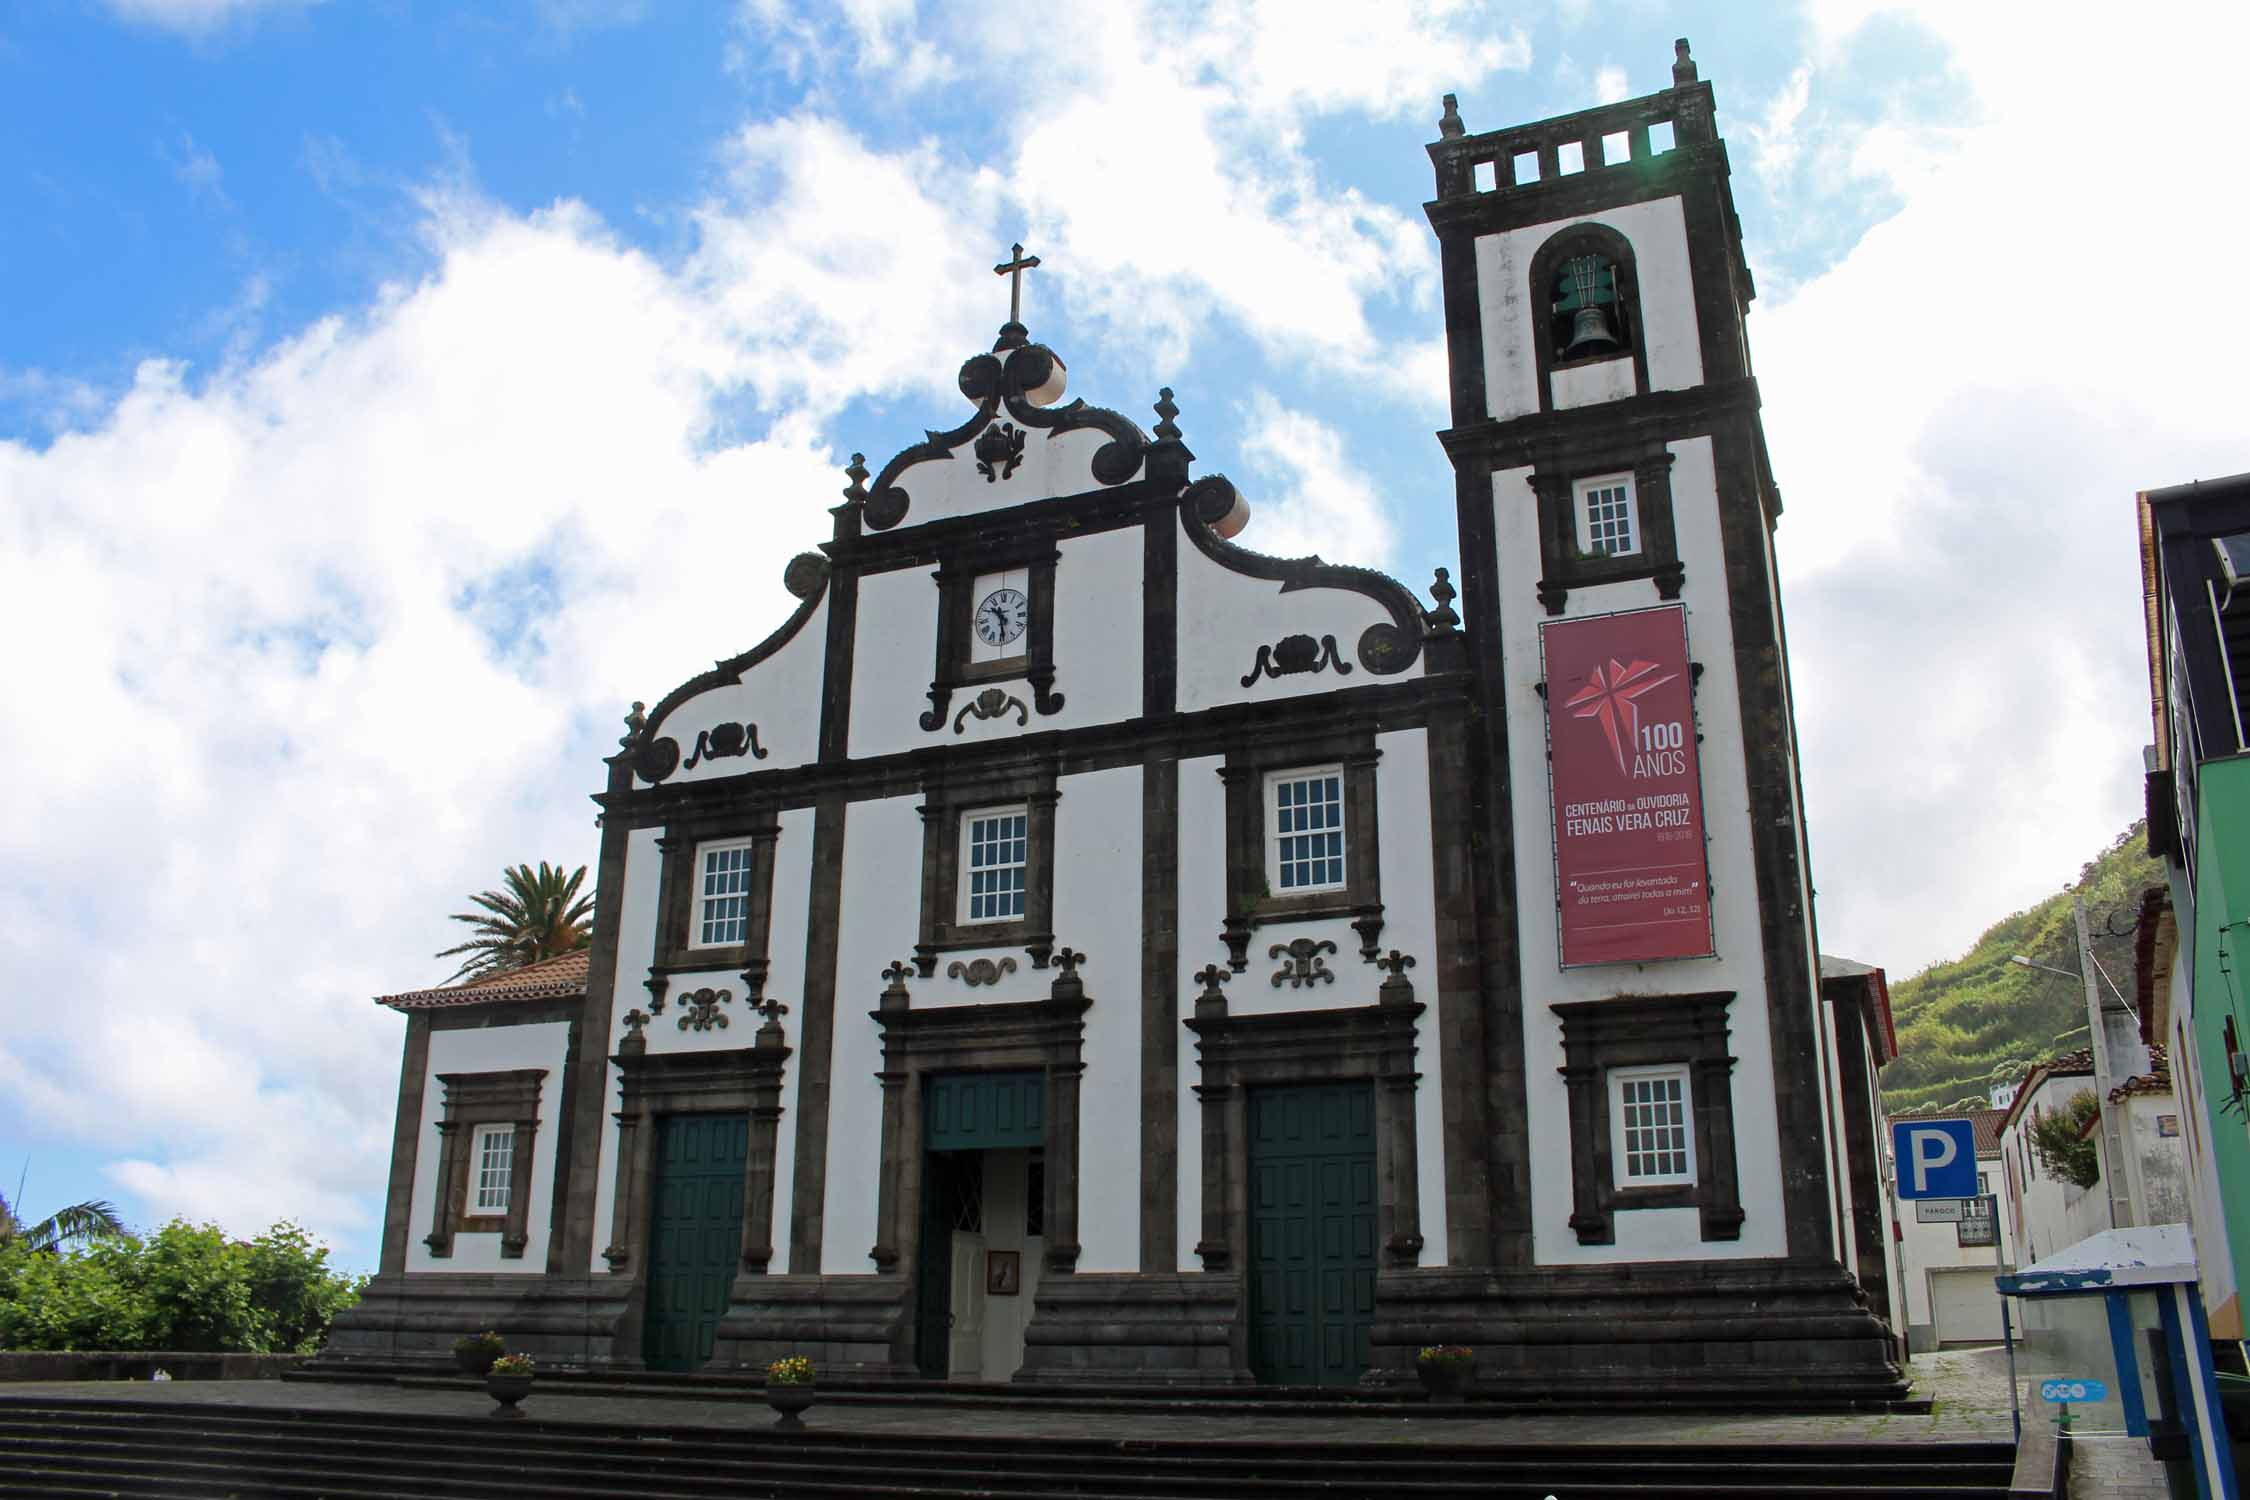 The church of Maia in São Miguel island, Azores